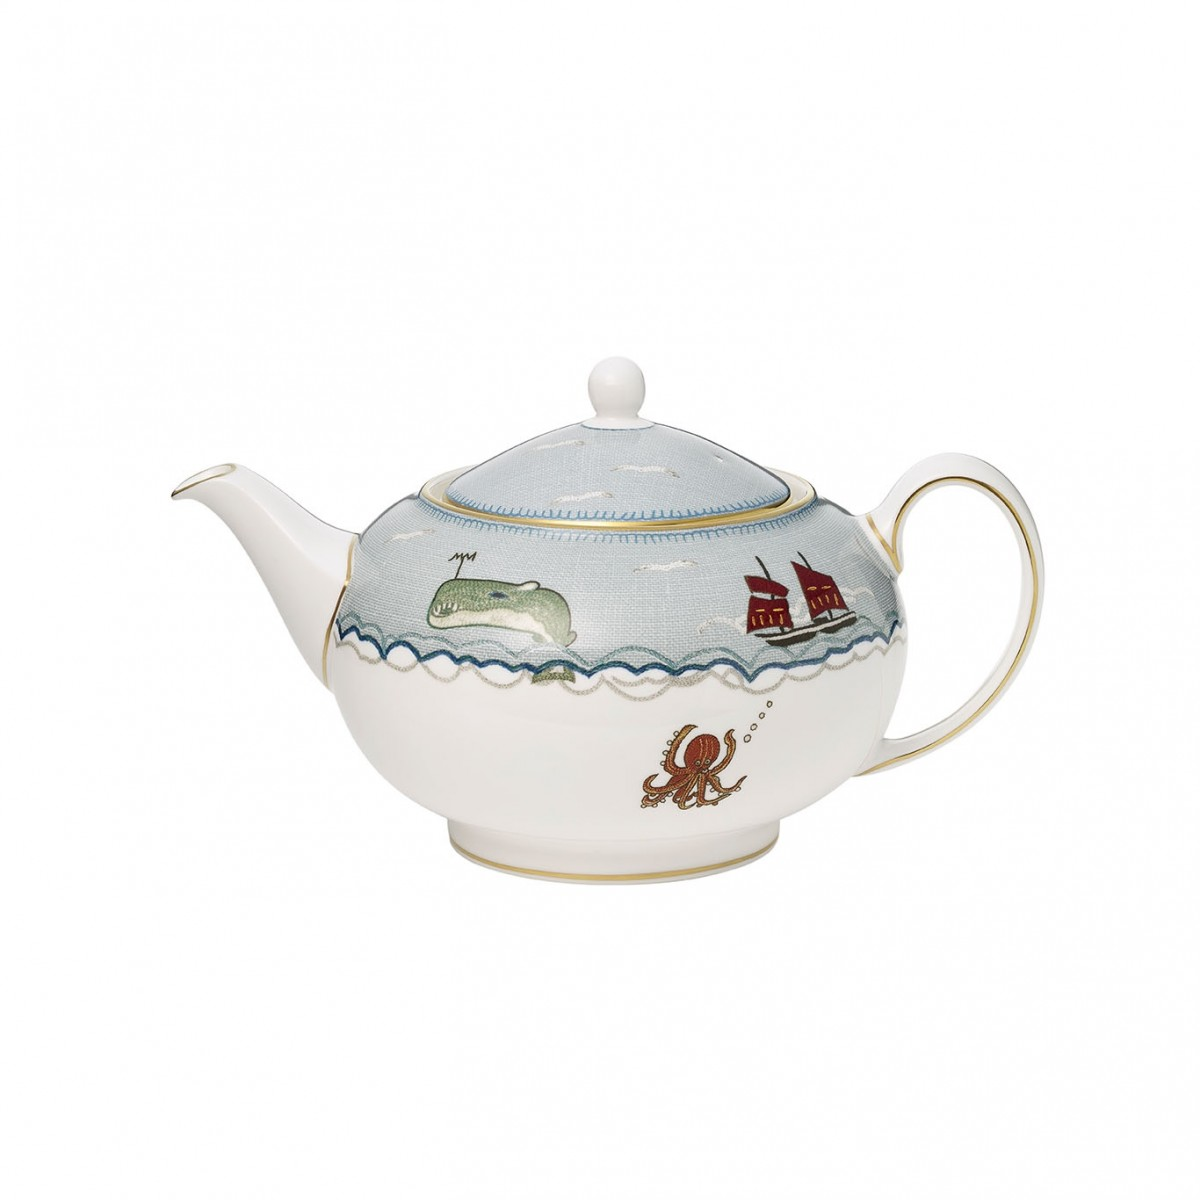 Wedgwood Sailors Farewell Teapot